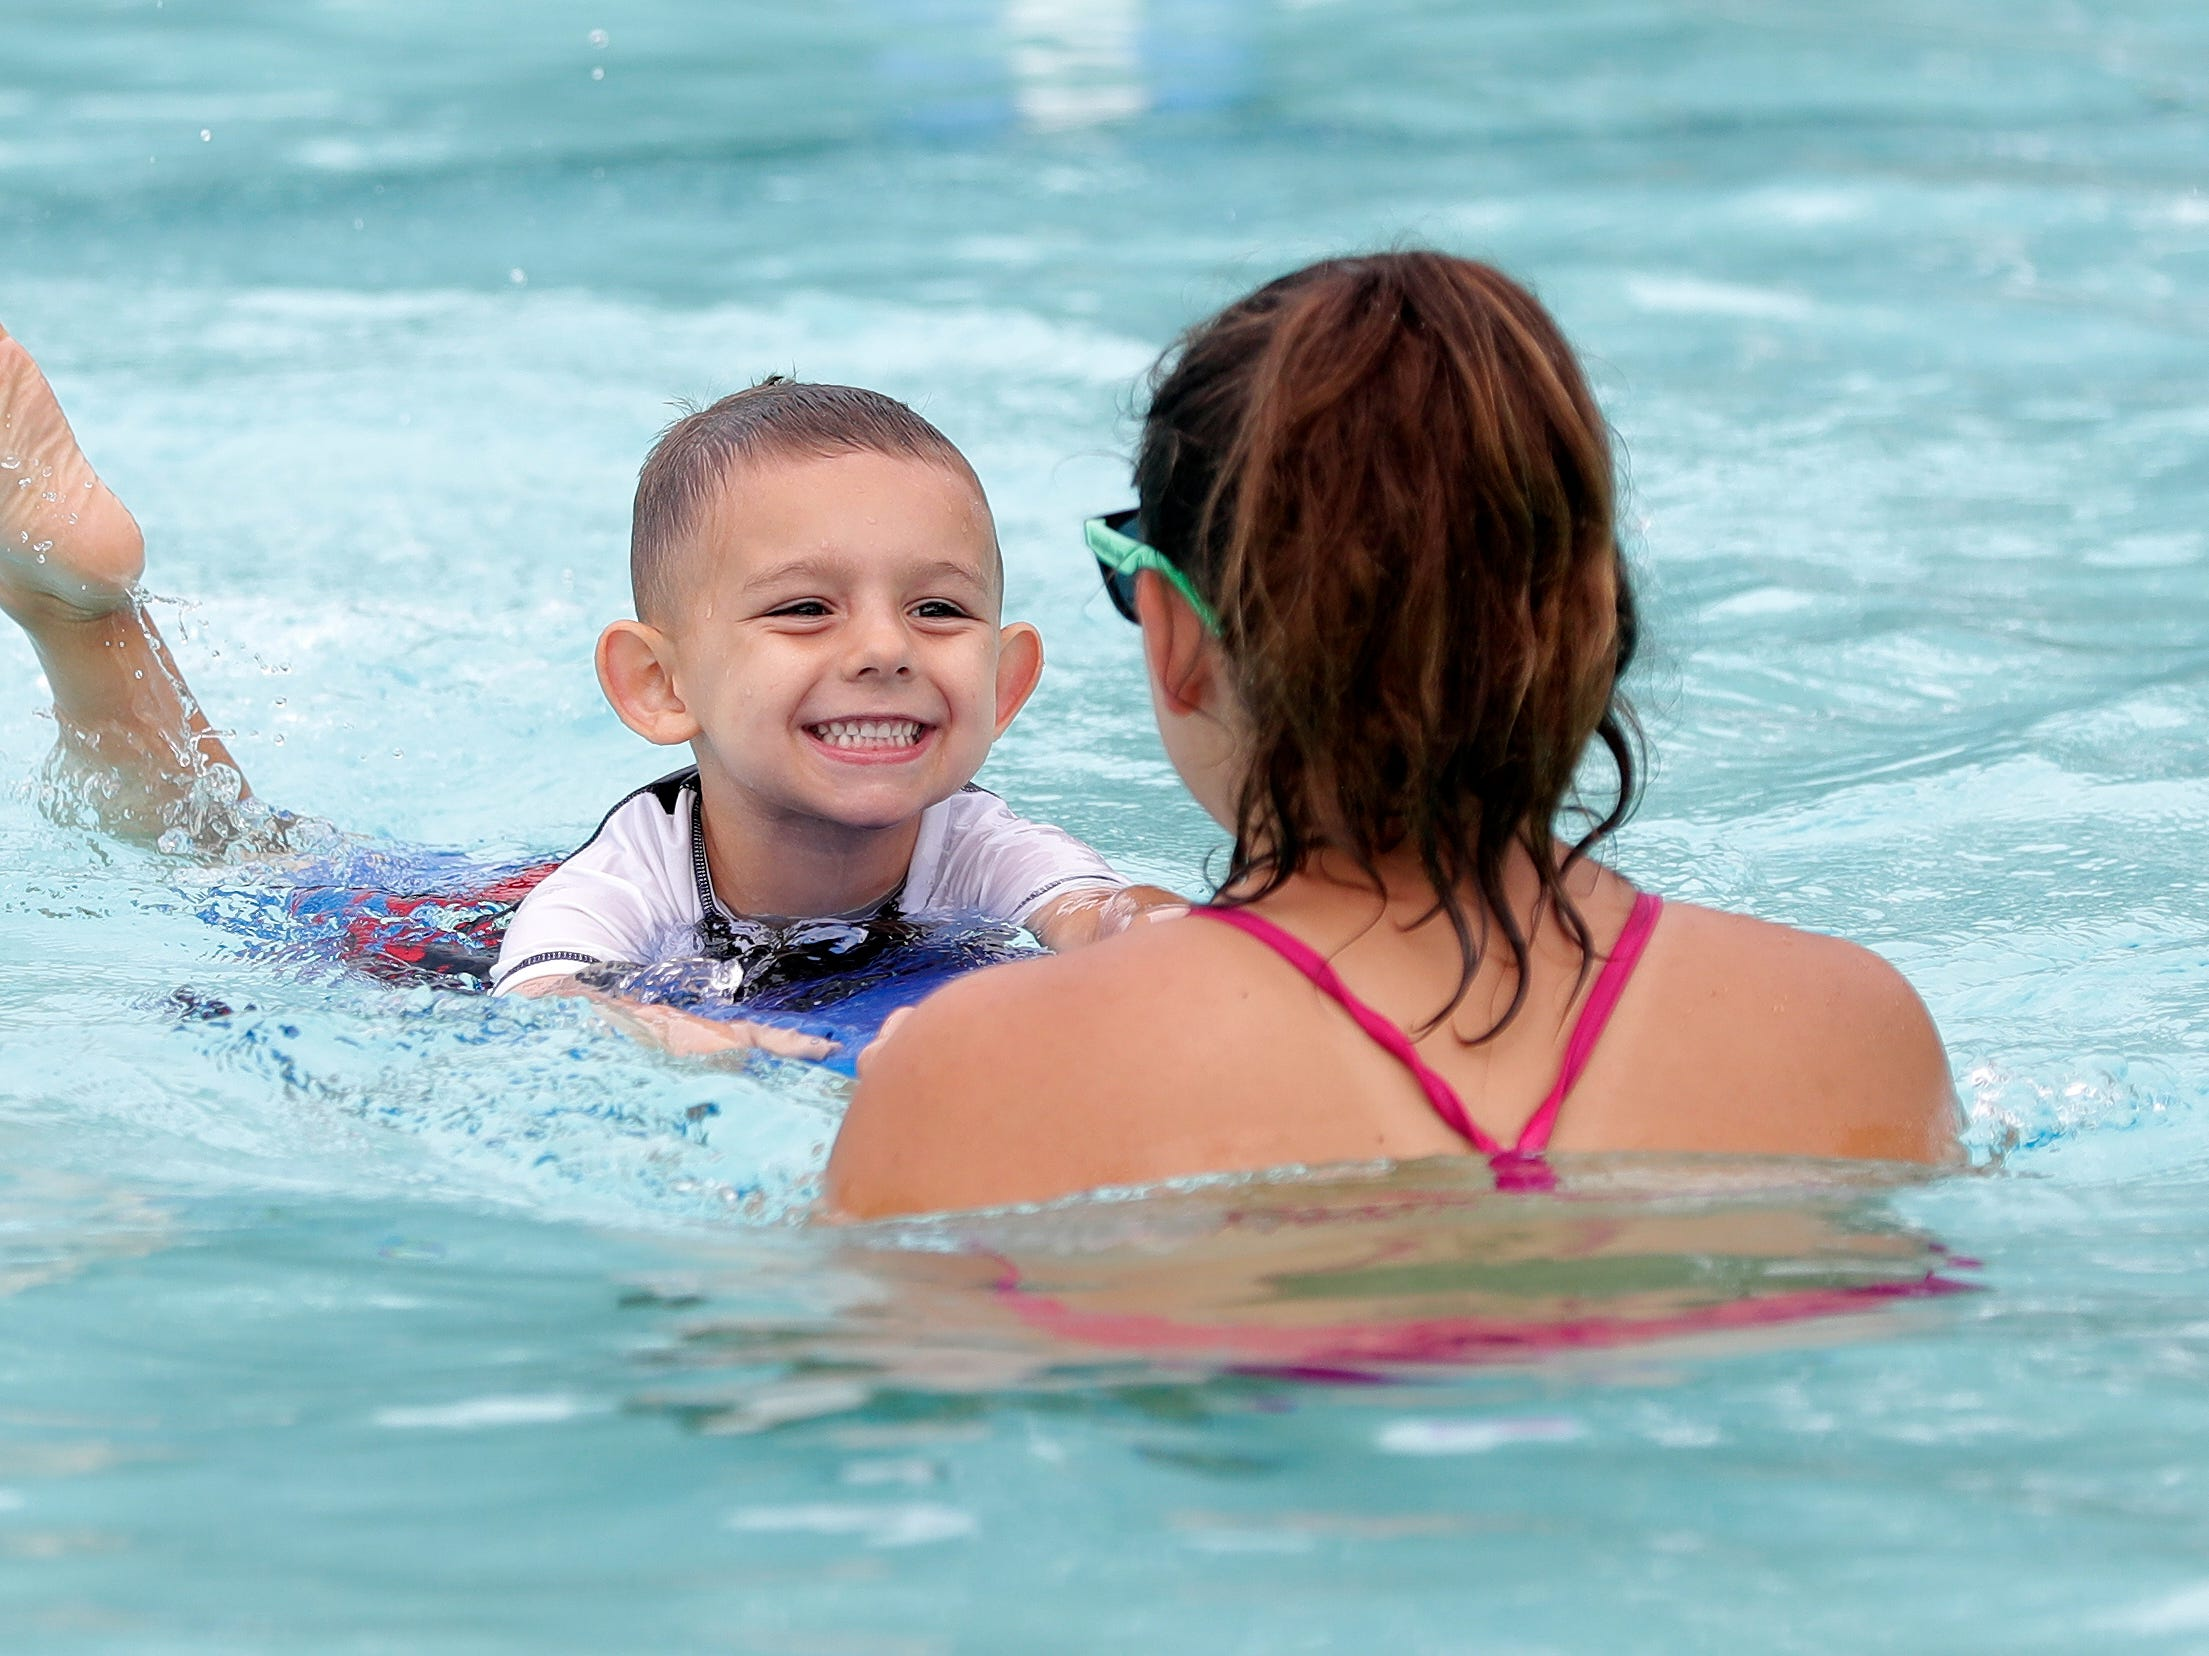 Agenda: Efforts to save De Pere pool, Green Bay ethics policy and term limits questioned